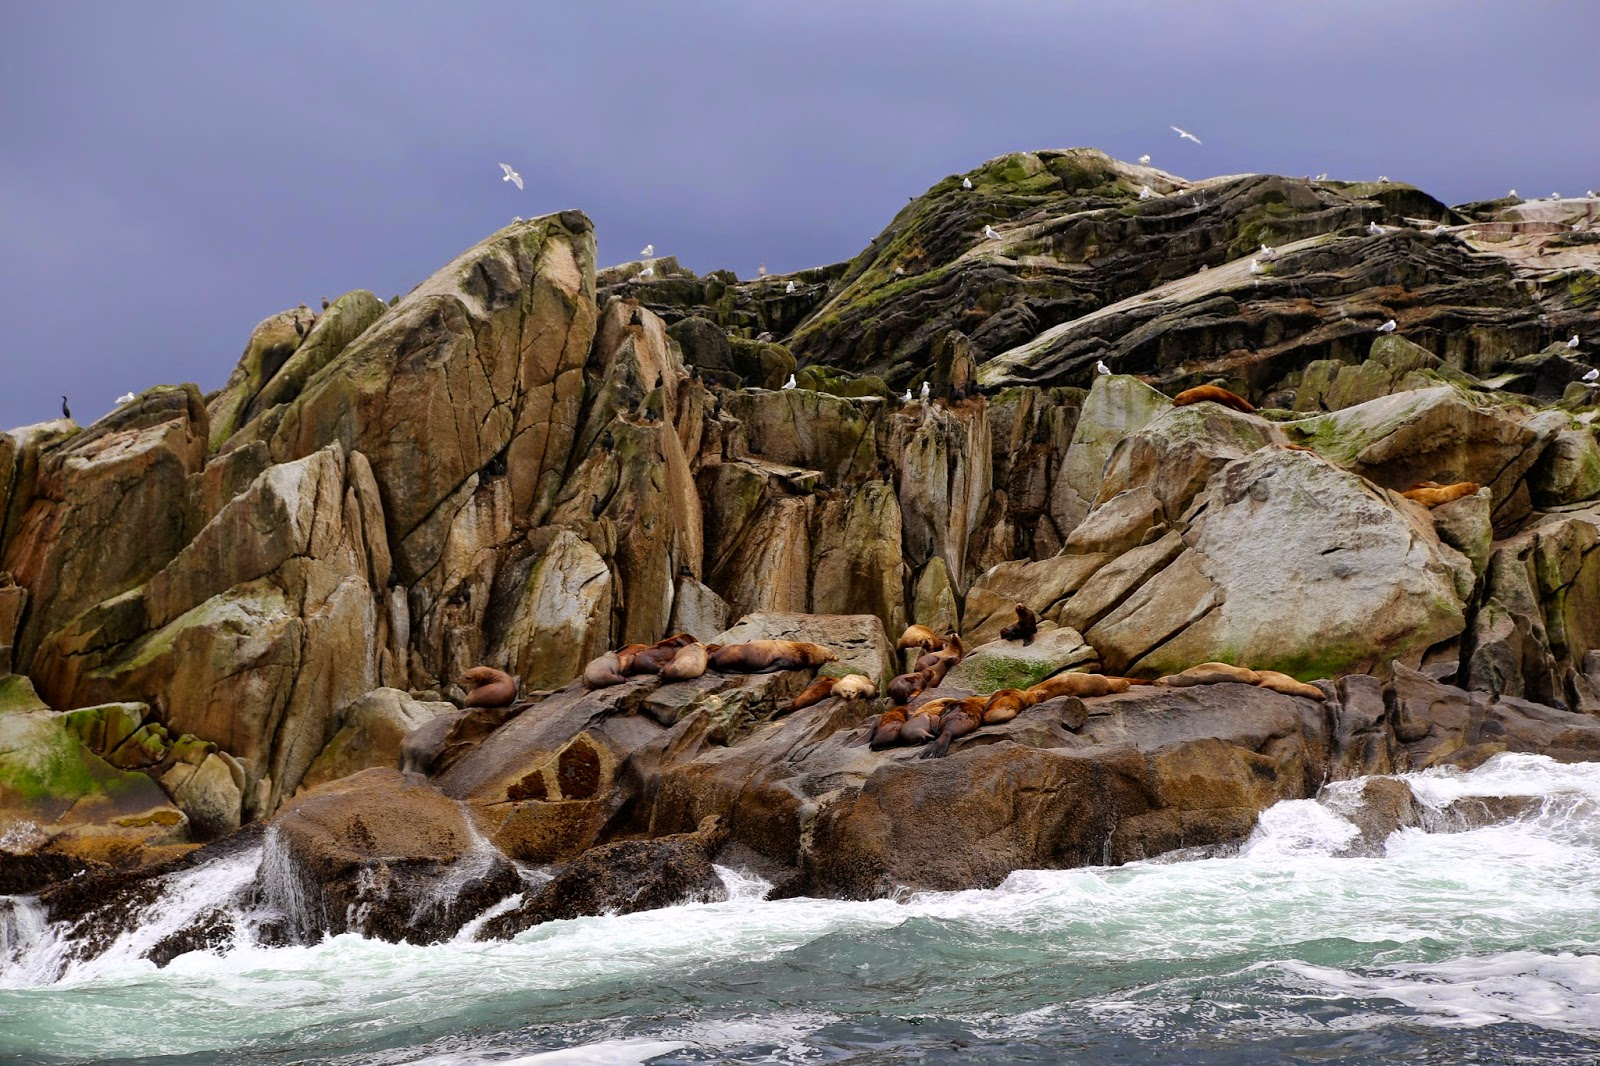 Sea lions on a rock, sitka, alaska